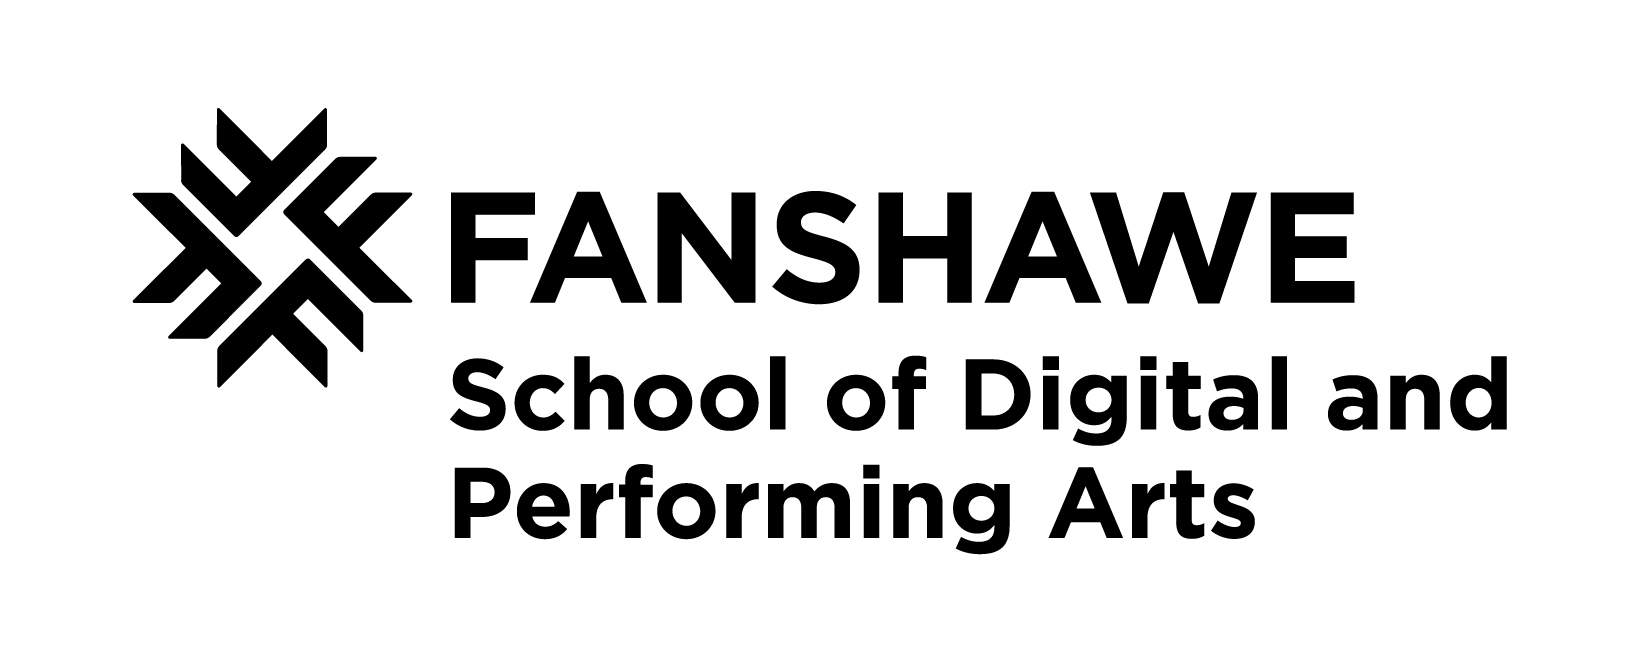 Fanshawe School of Digital and Performing Arts Logo